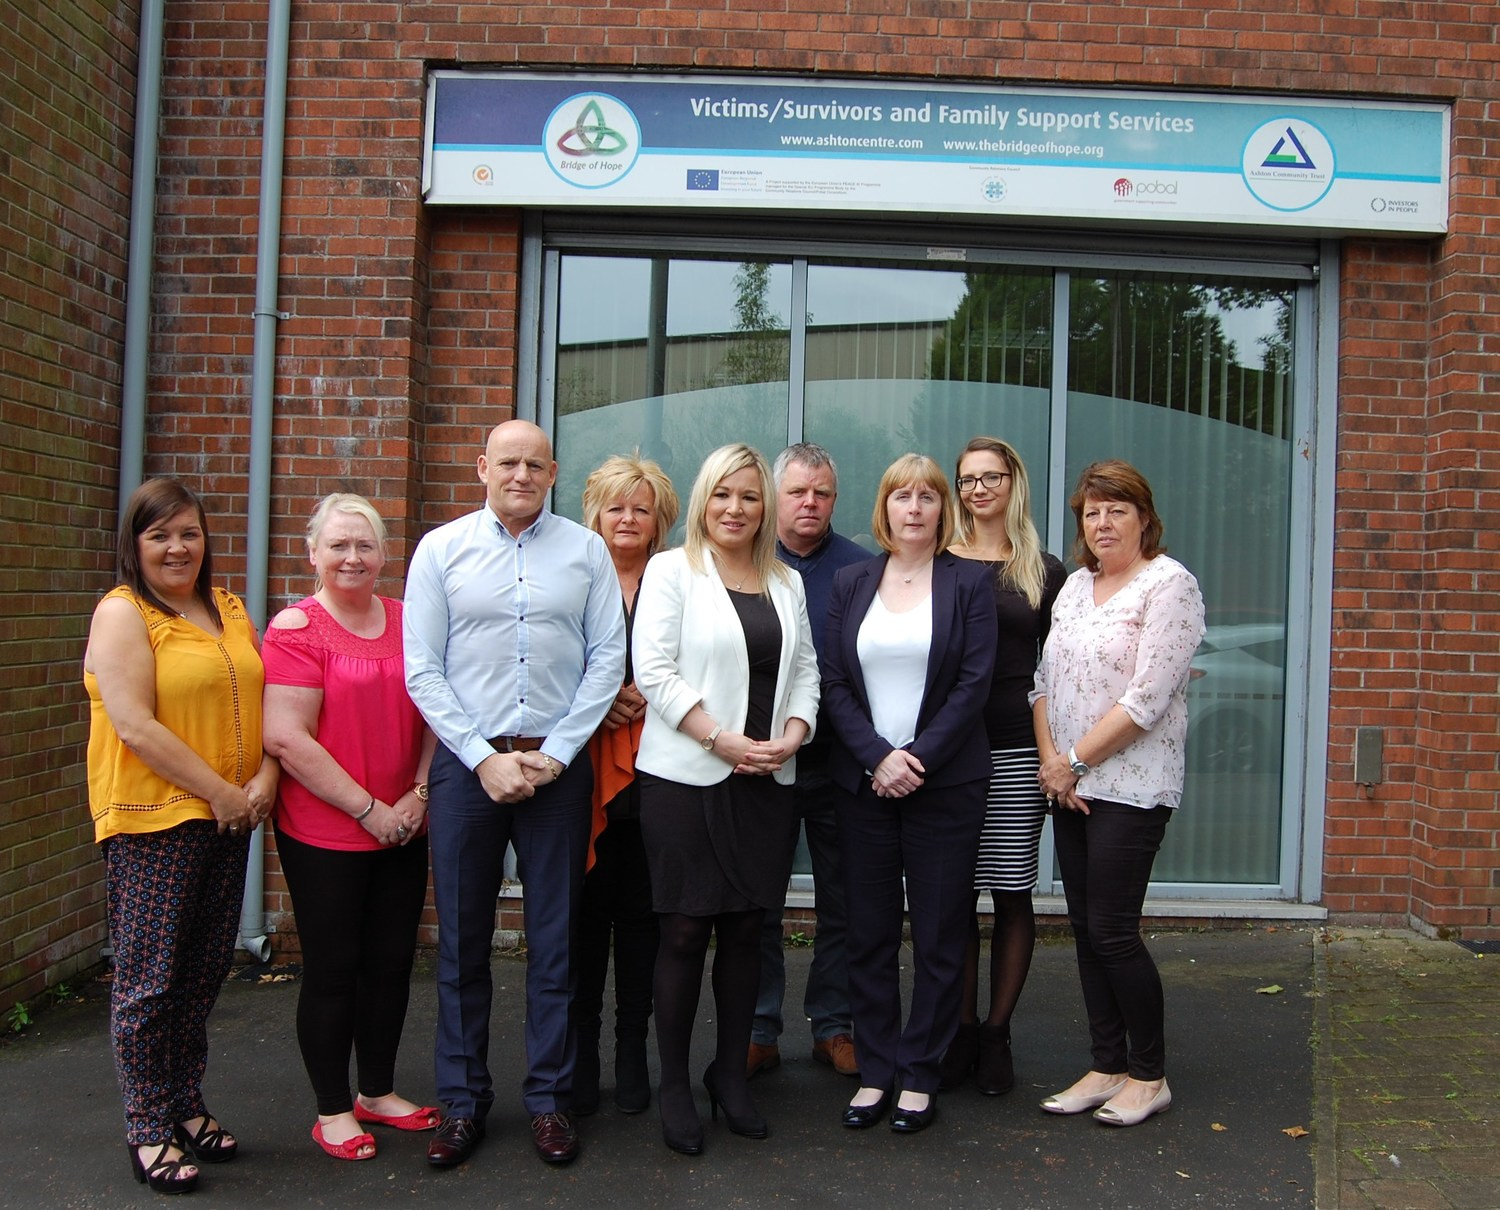 Health Minister Michelle O'Neill met with community groups at Bridge of Hope in north Belfast last month to discuss suicide prevention